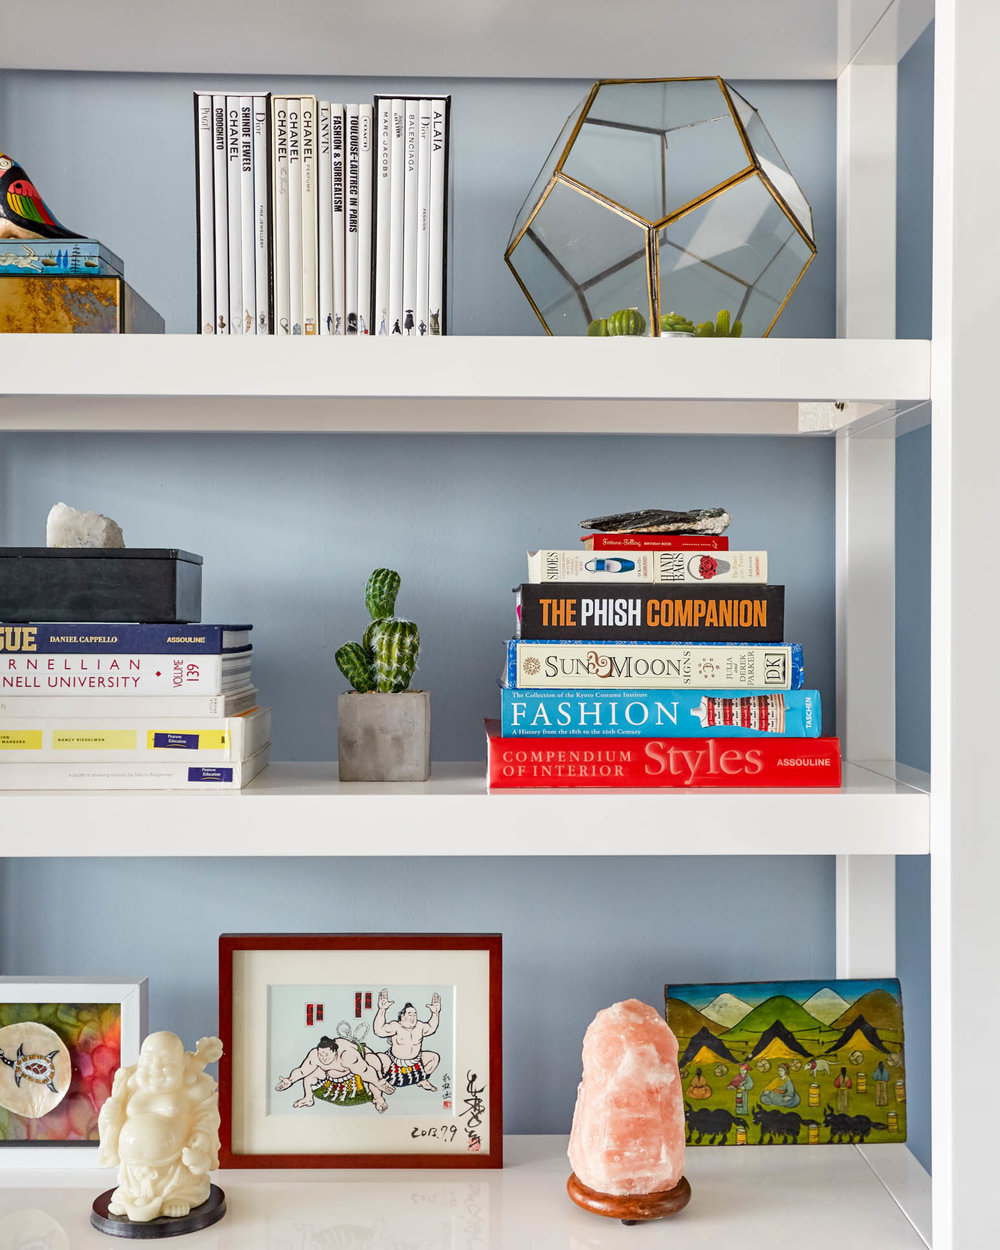 behr-paint-blue-walls-shelfie.jpg